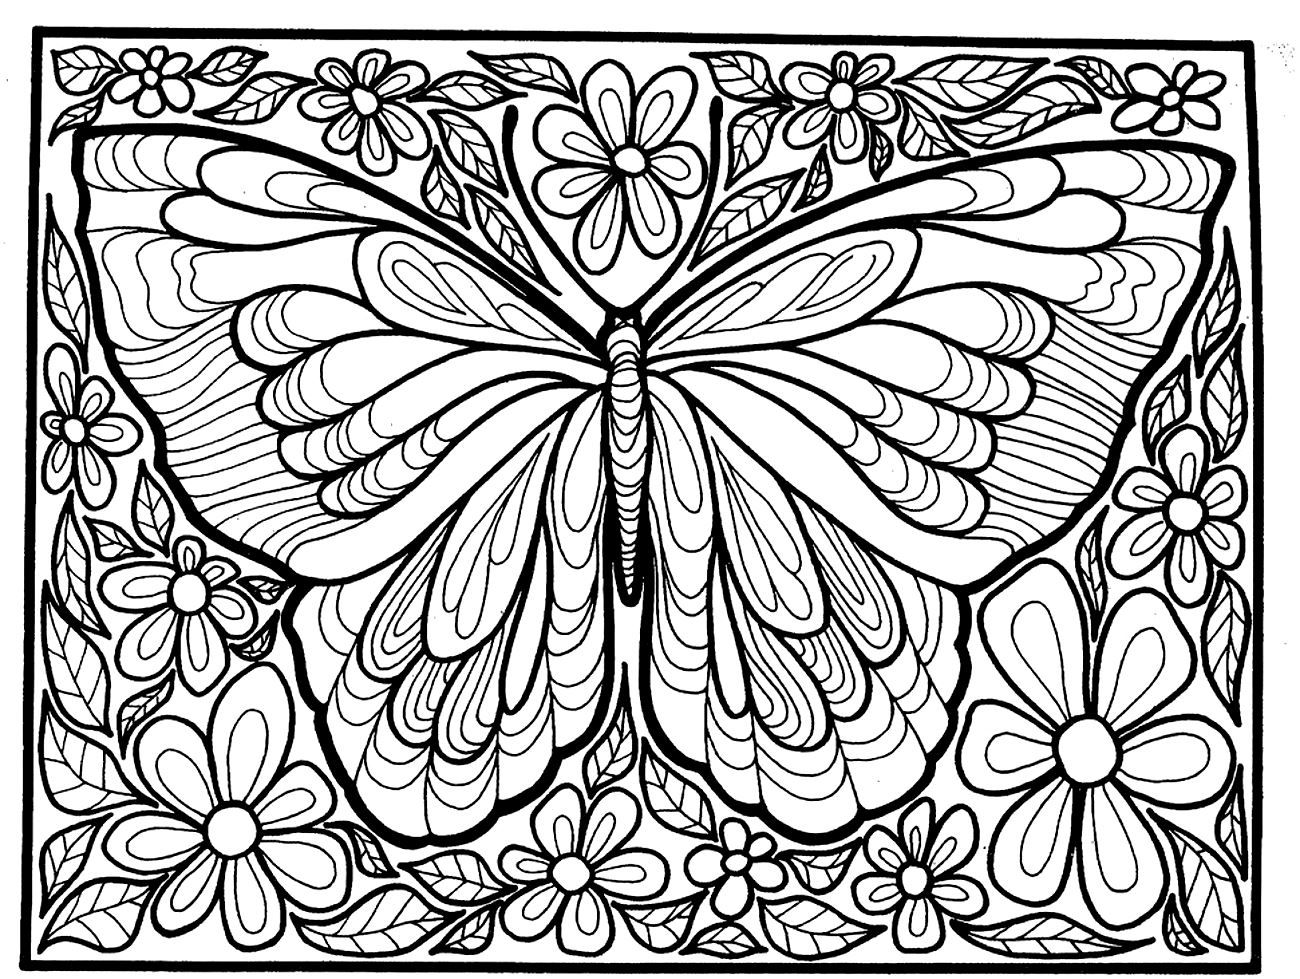 Pages to color for adults - To Print This Free Coloring Page Coloring Adult Difficult Big Butterfly